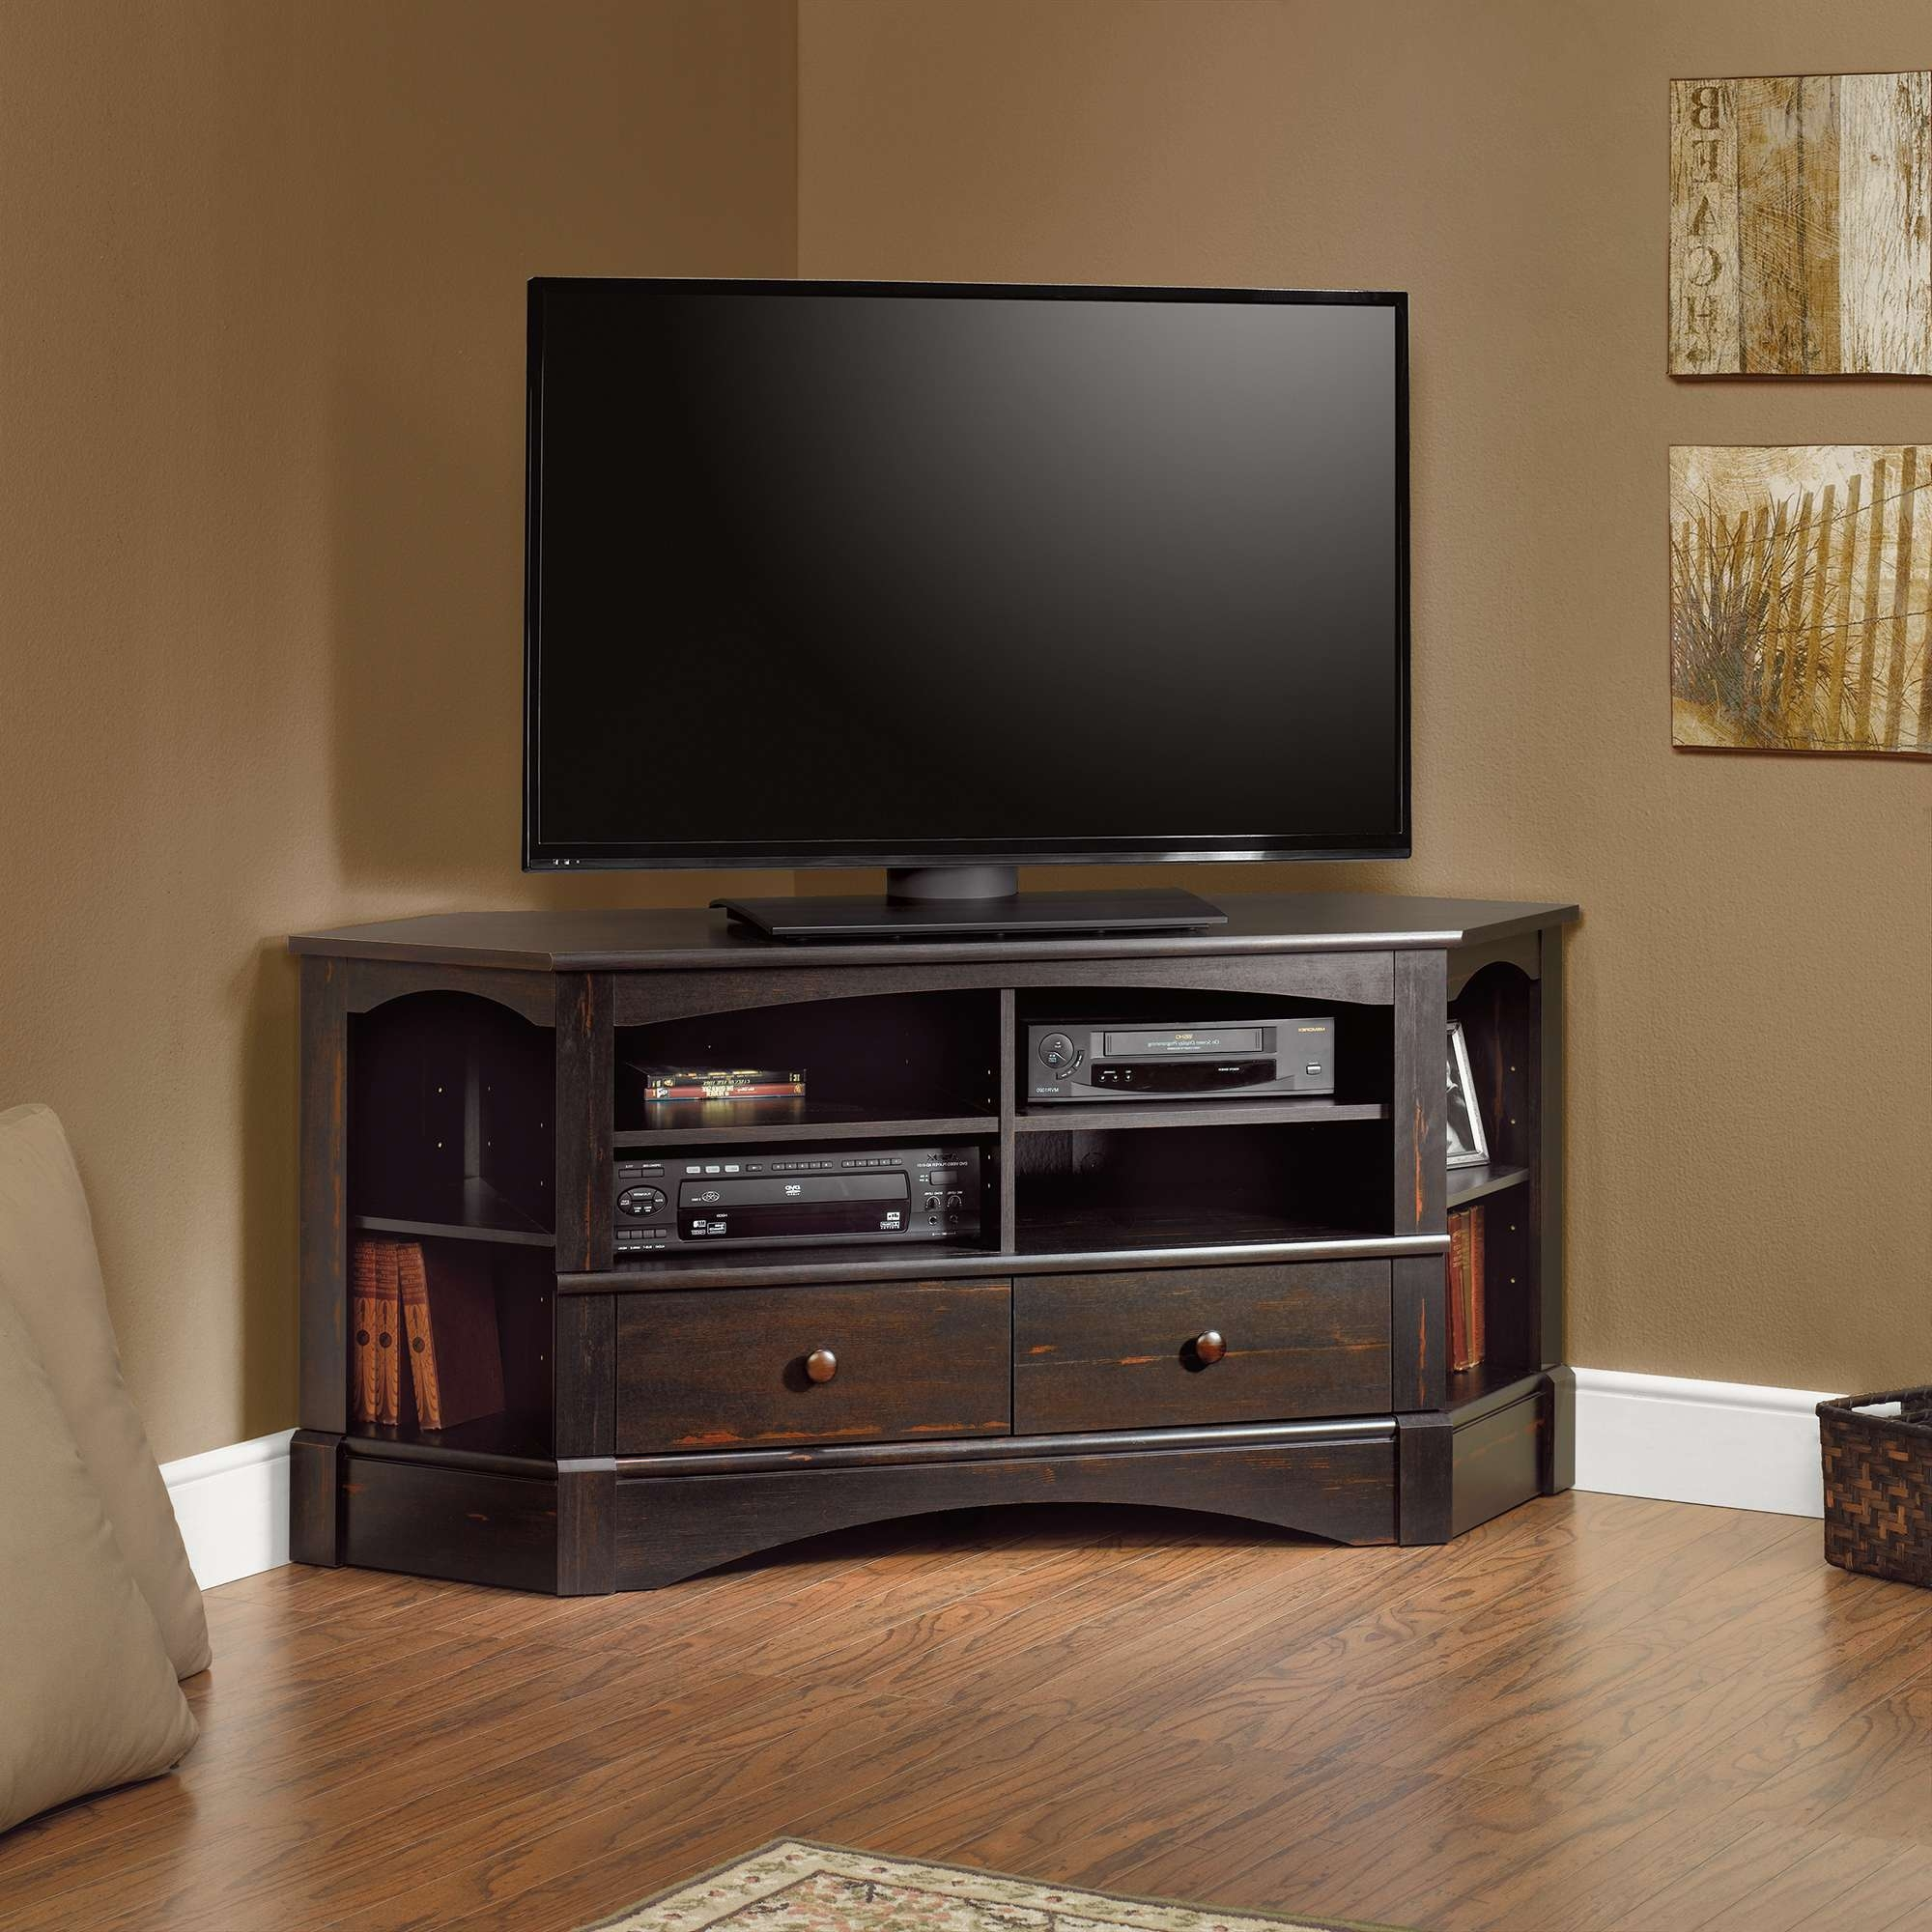 Fancy Matte Varnished Dark Oak Wood Tall Corner Tv Stand For Throughout Dark Tv Stands (View 10 of 15)